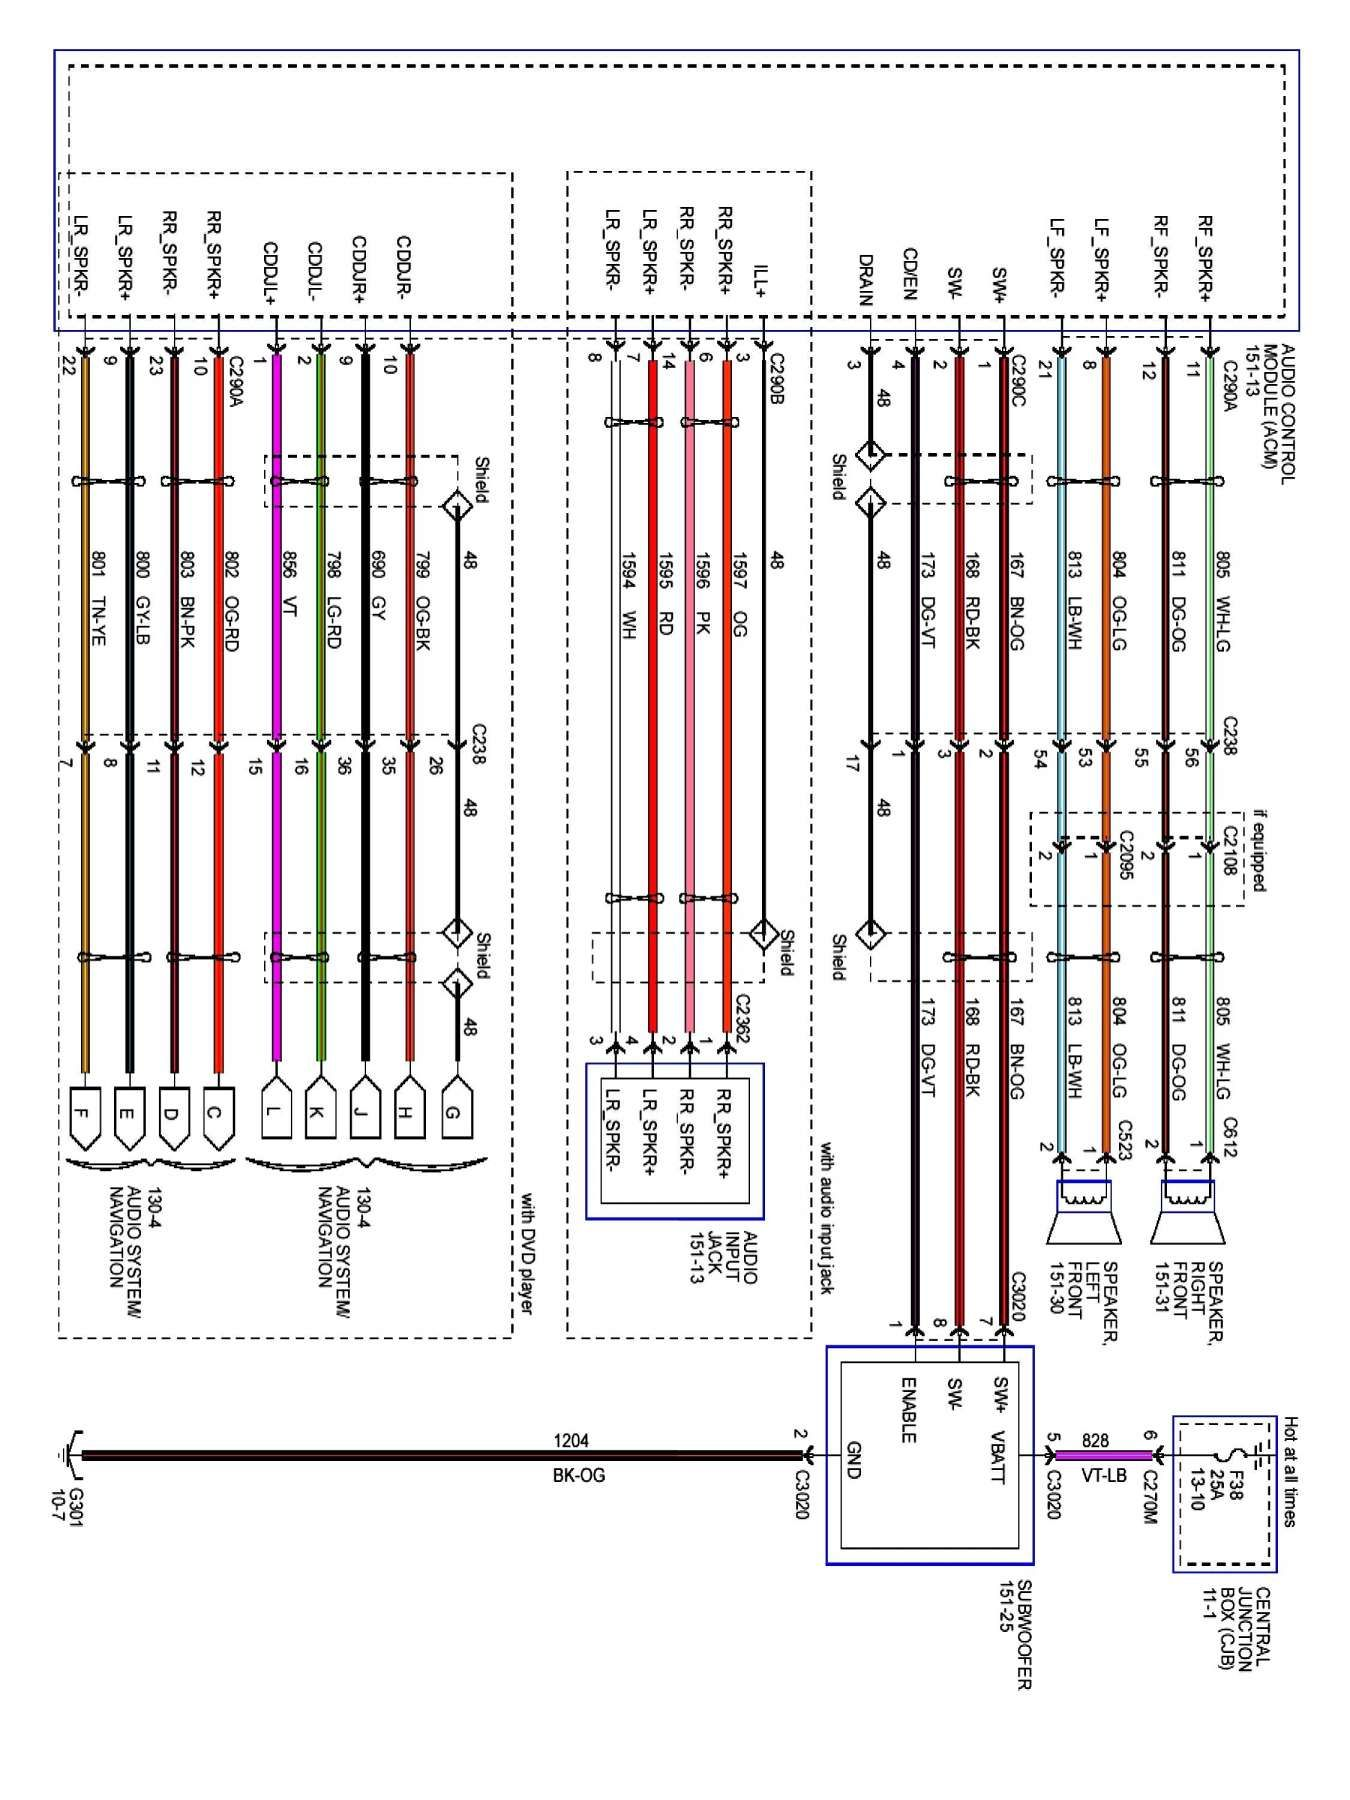 10+ 2004 Ford Explorer Car Stereo Wiring Diagram - Car Diagram -  Wiringg.net in 2020 | Trailer wiring diagram, 2004 ford f150, DiagramPinterest